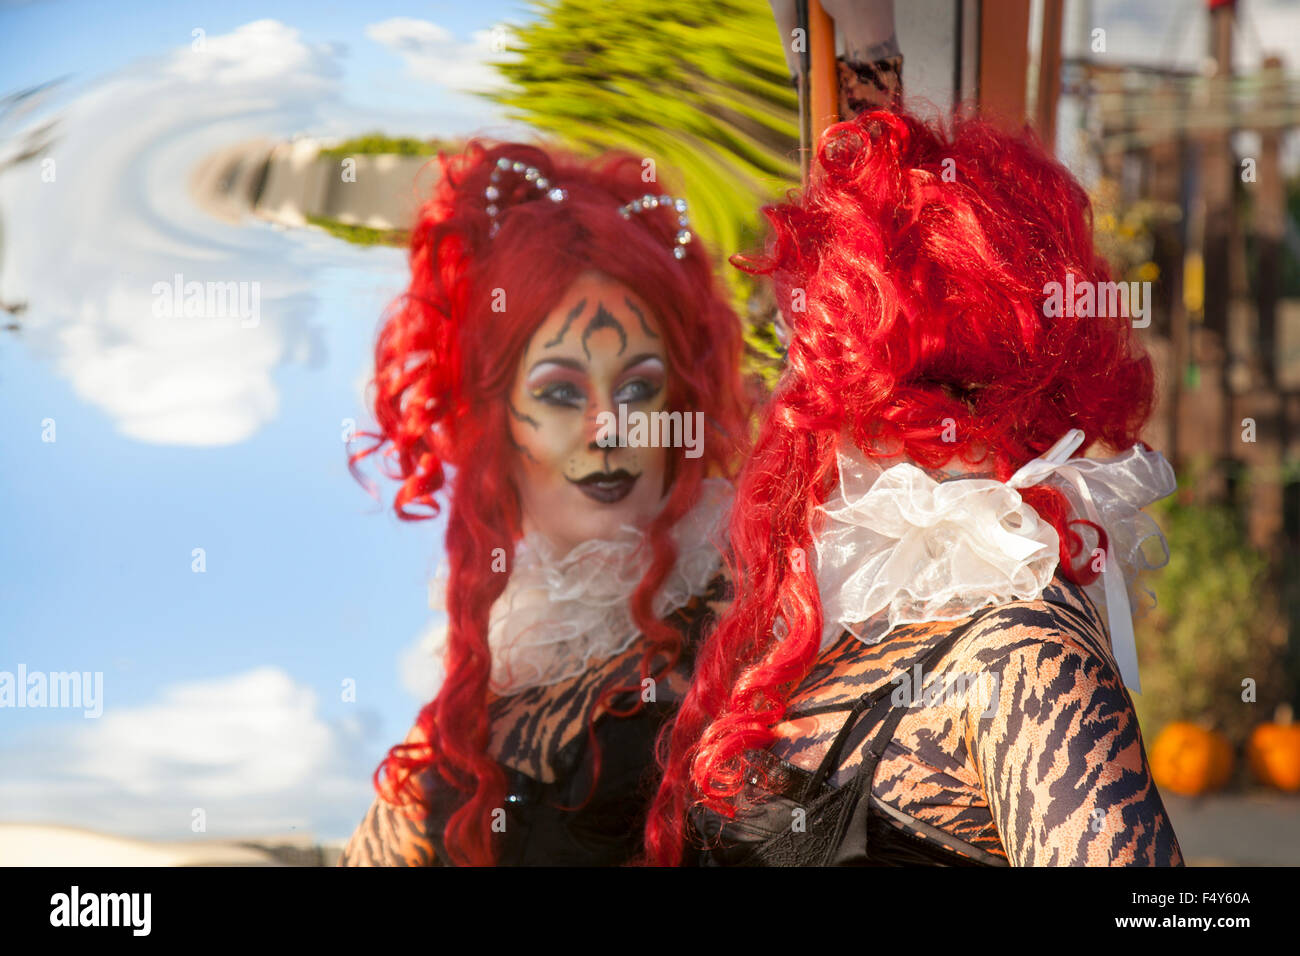 Woman with red hair wig, in cat suit with fun and interesting reflected images in distorting convex & concave - Stock Image